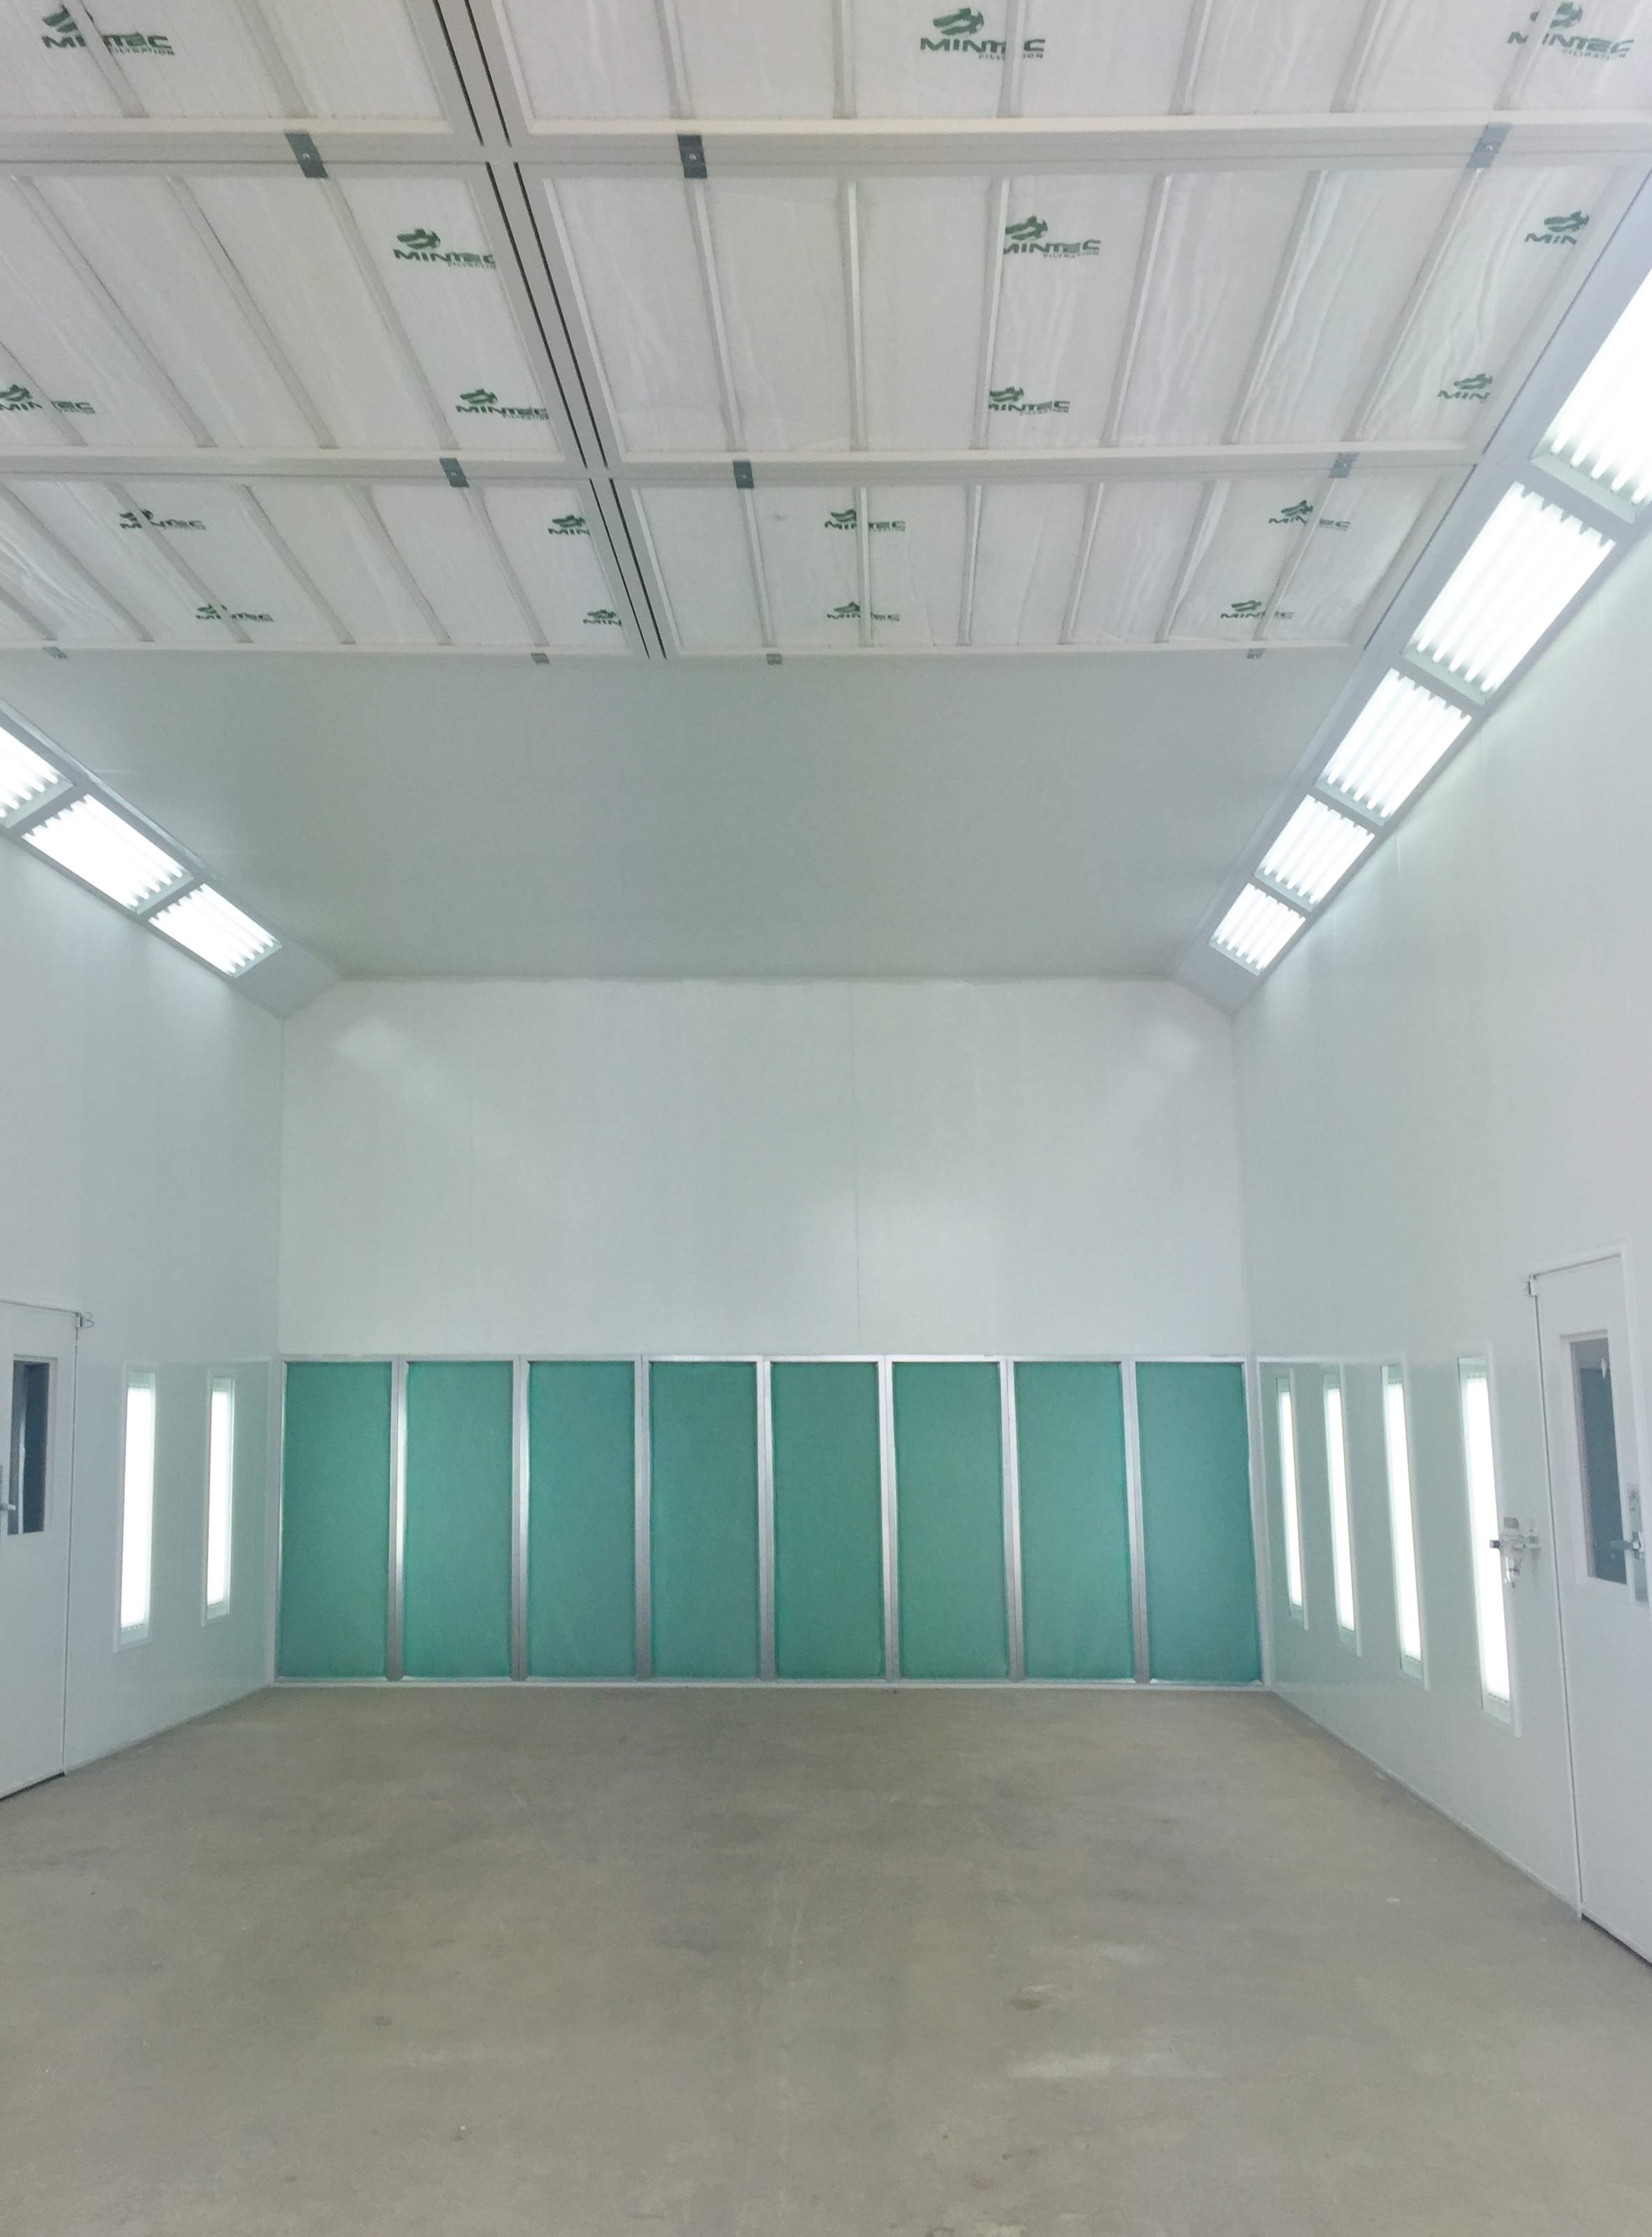 Australian Made Truck Amp Large Spray Paint Booths Contact